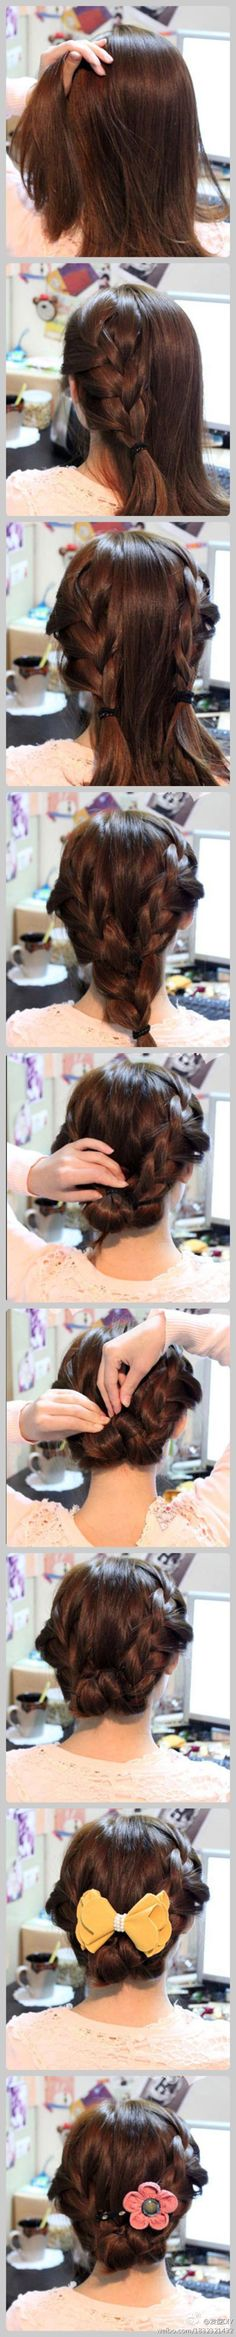 Hairstyle. Braid. Accessory. Tutorial. | Kenra Professional Inspiration